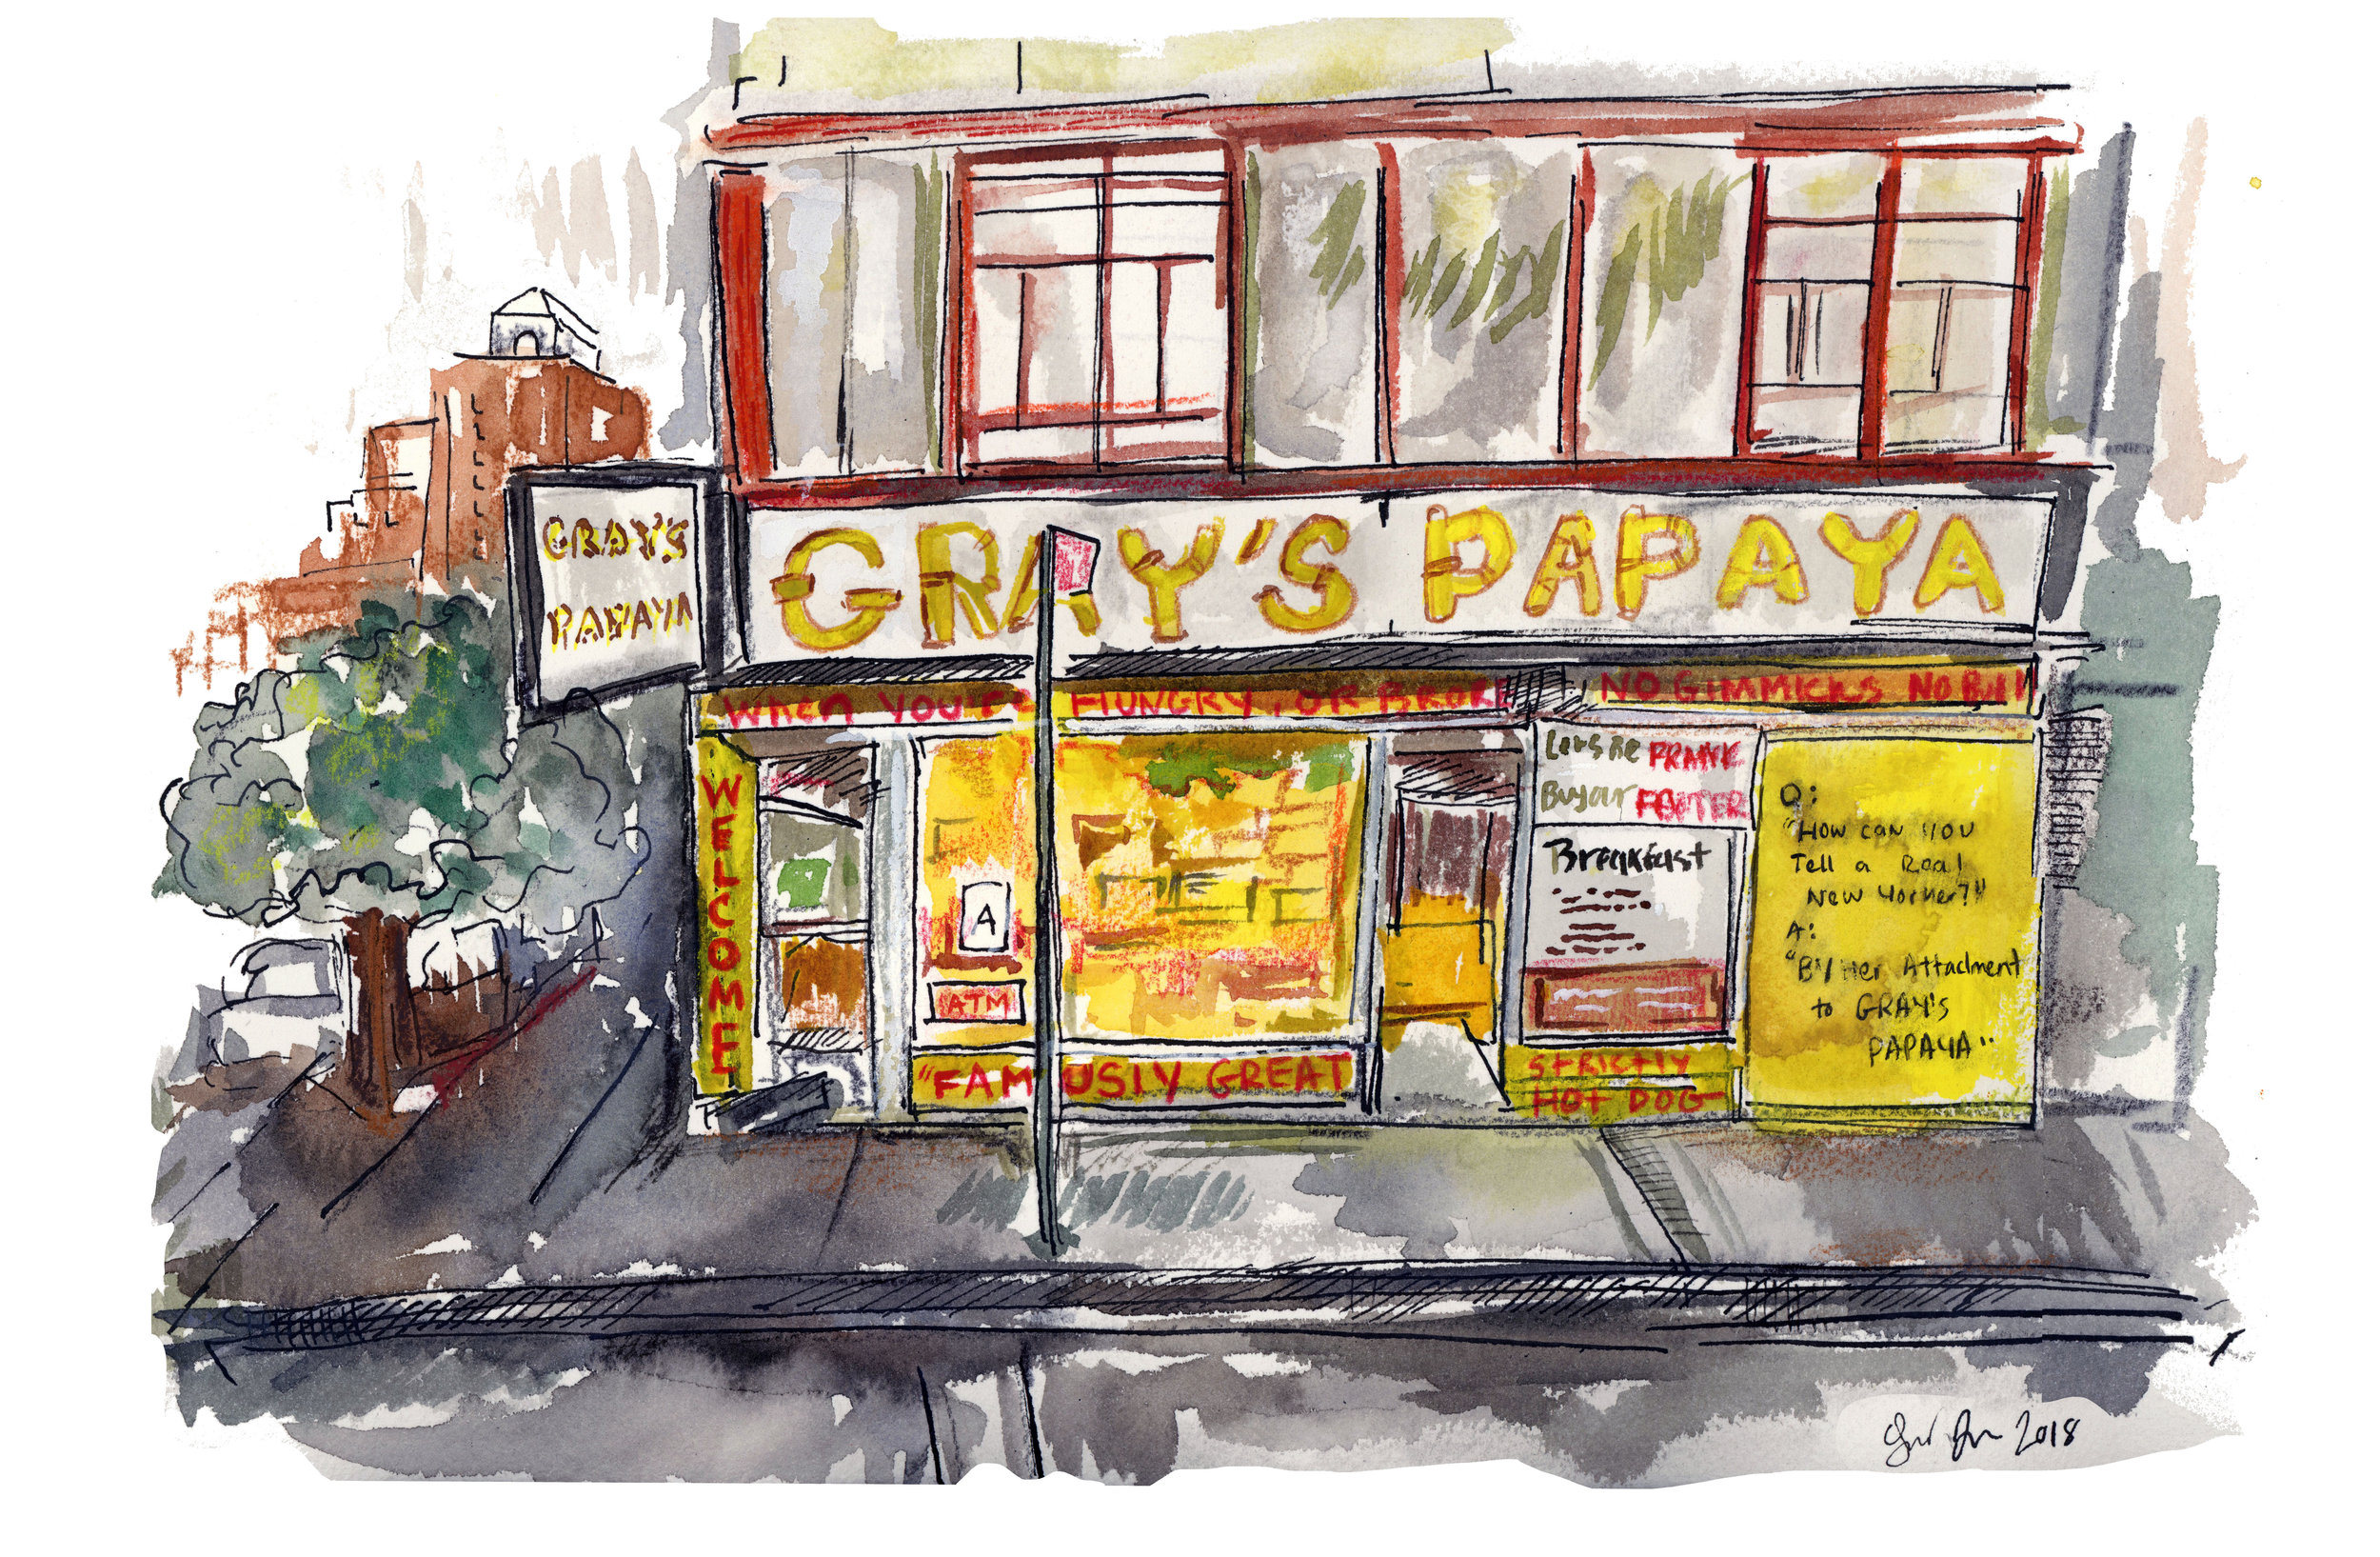 Gray's Papaya on 72nd.